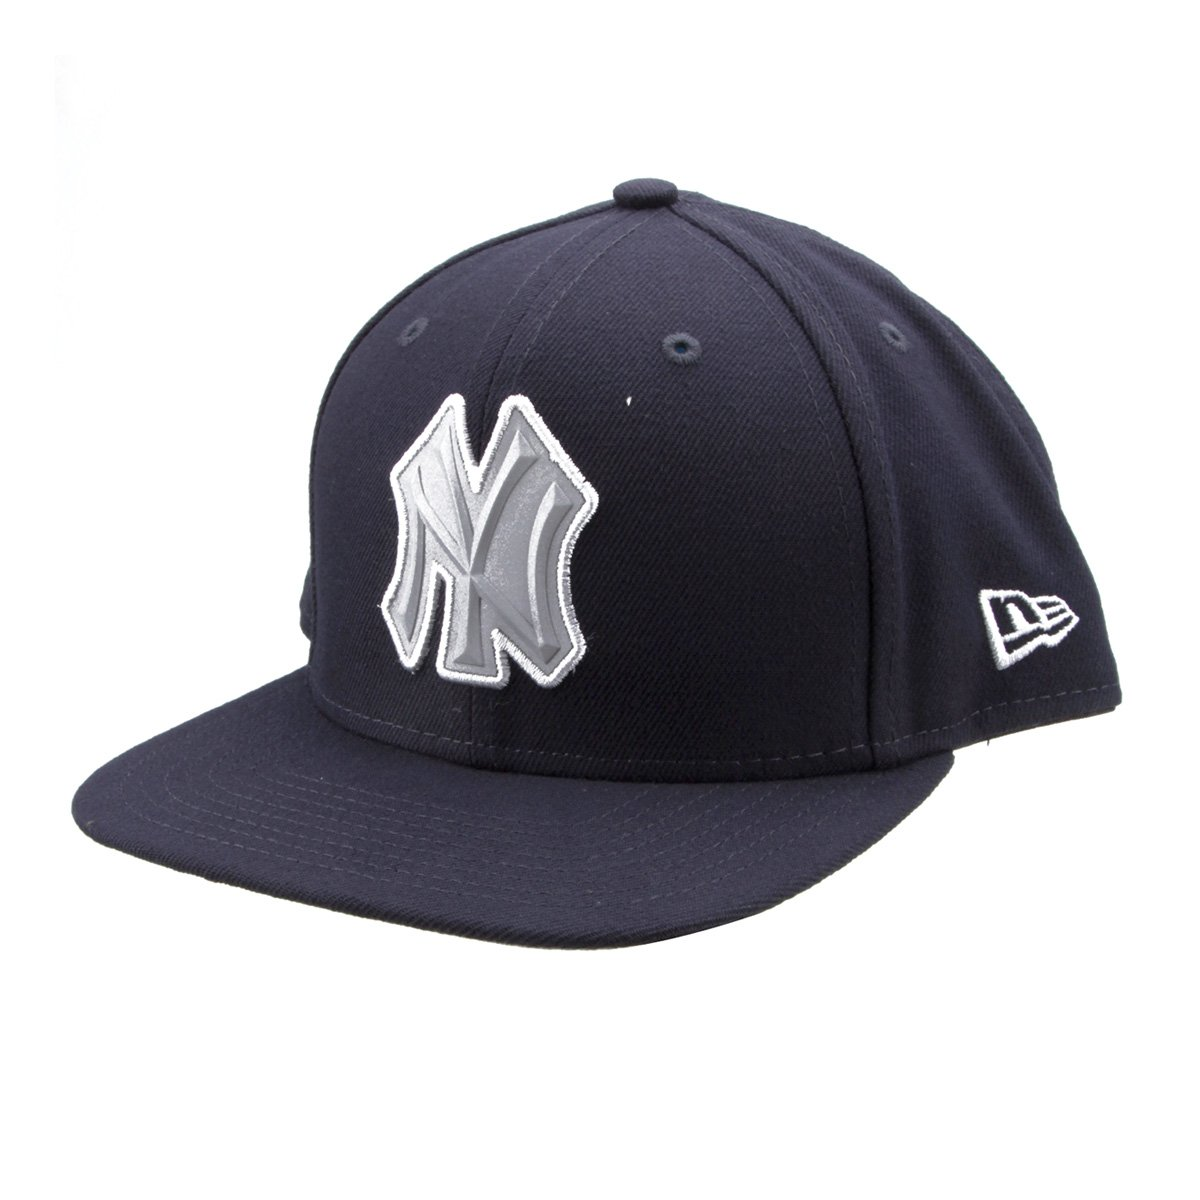 Boné New Era MLB New York Yankees Aba Reta Flash - Compre Agora ... d9aa4ba91a0